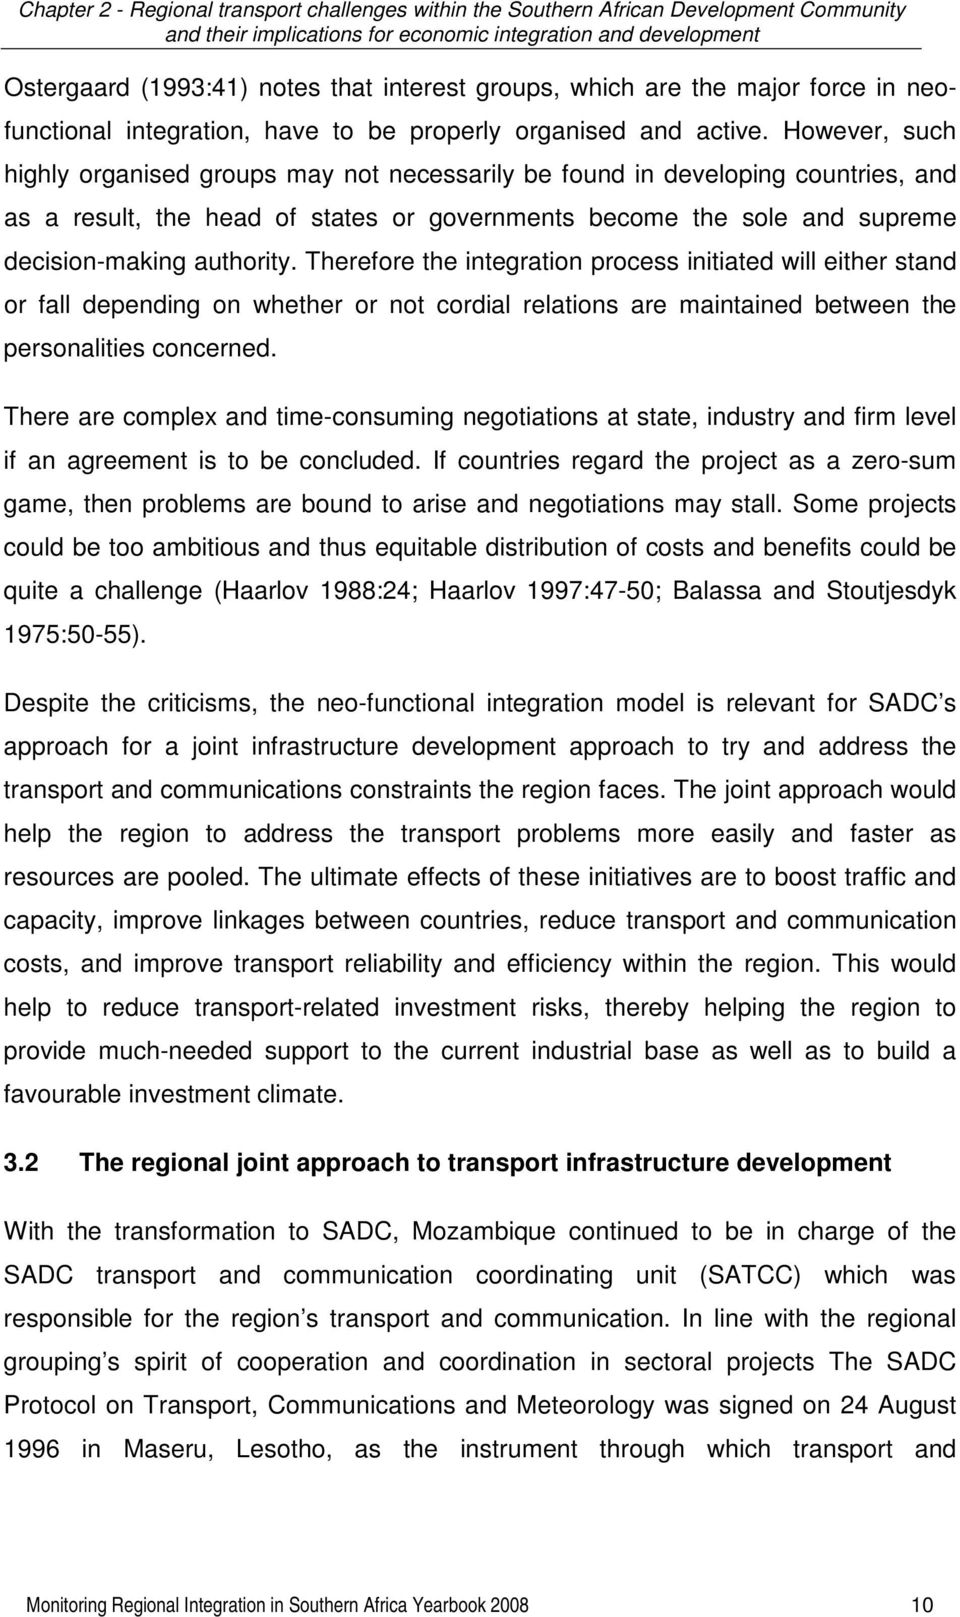 role of transportation and communication in economic development